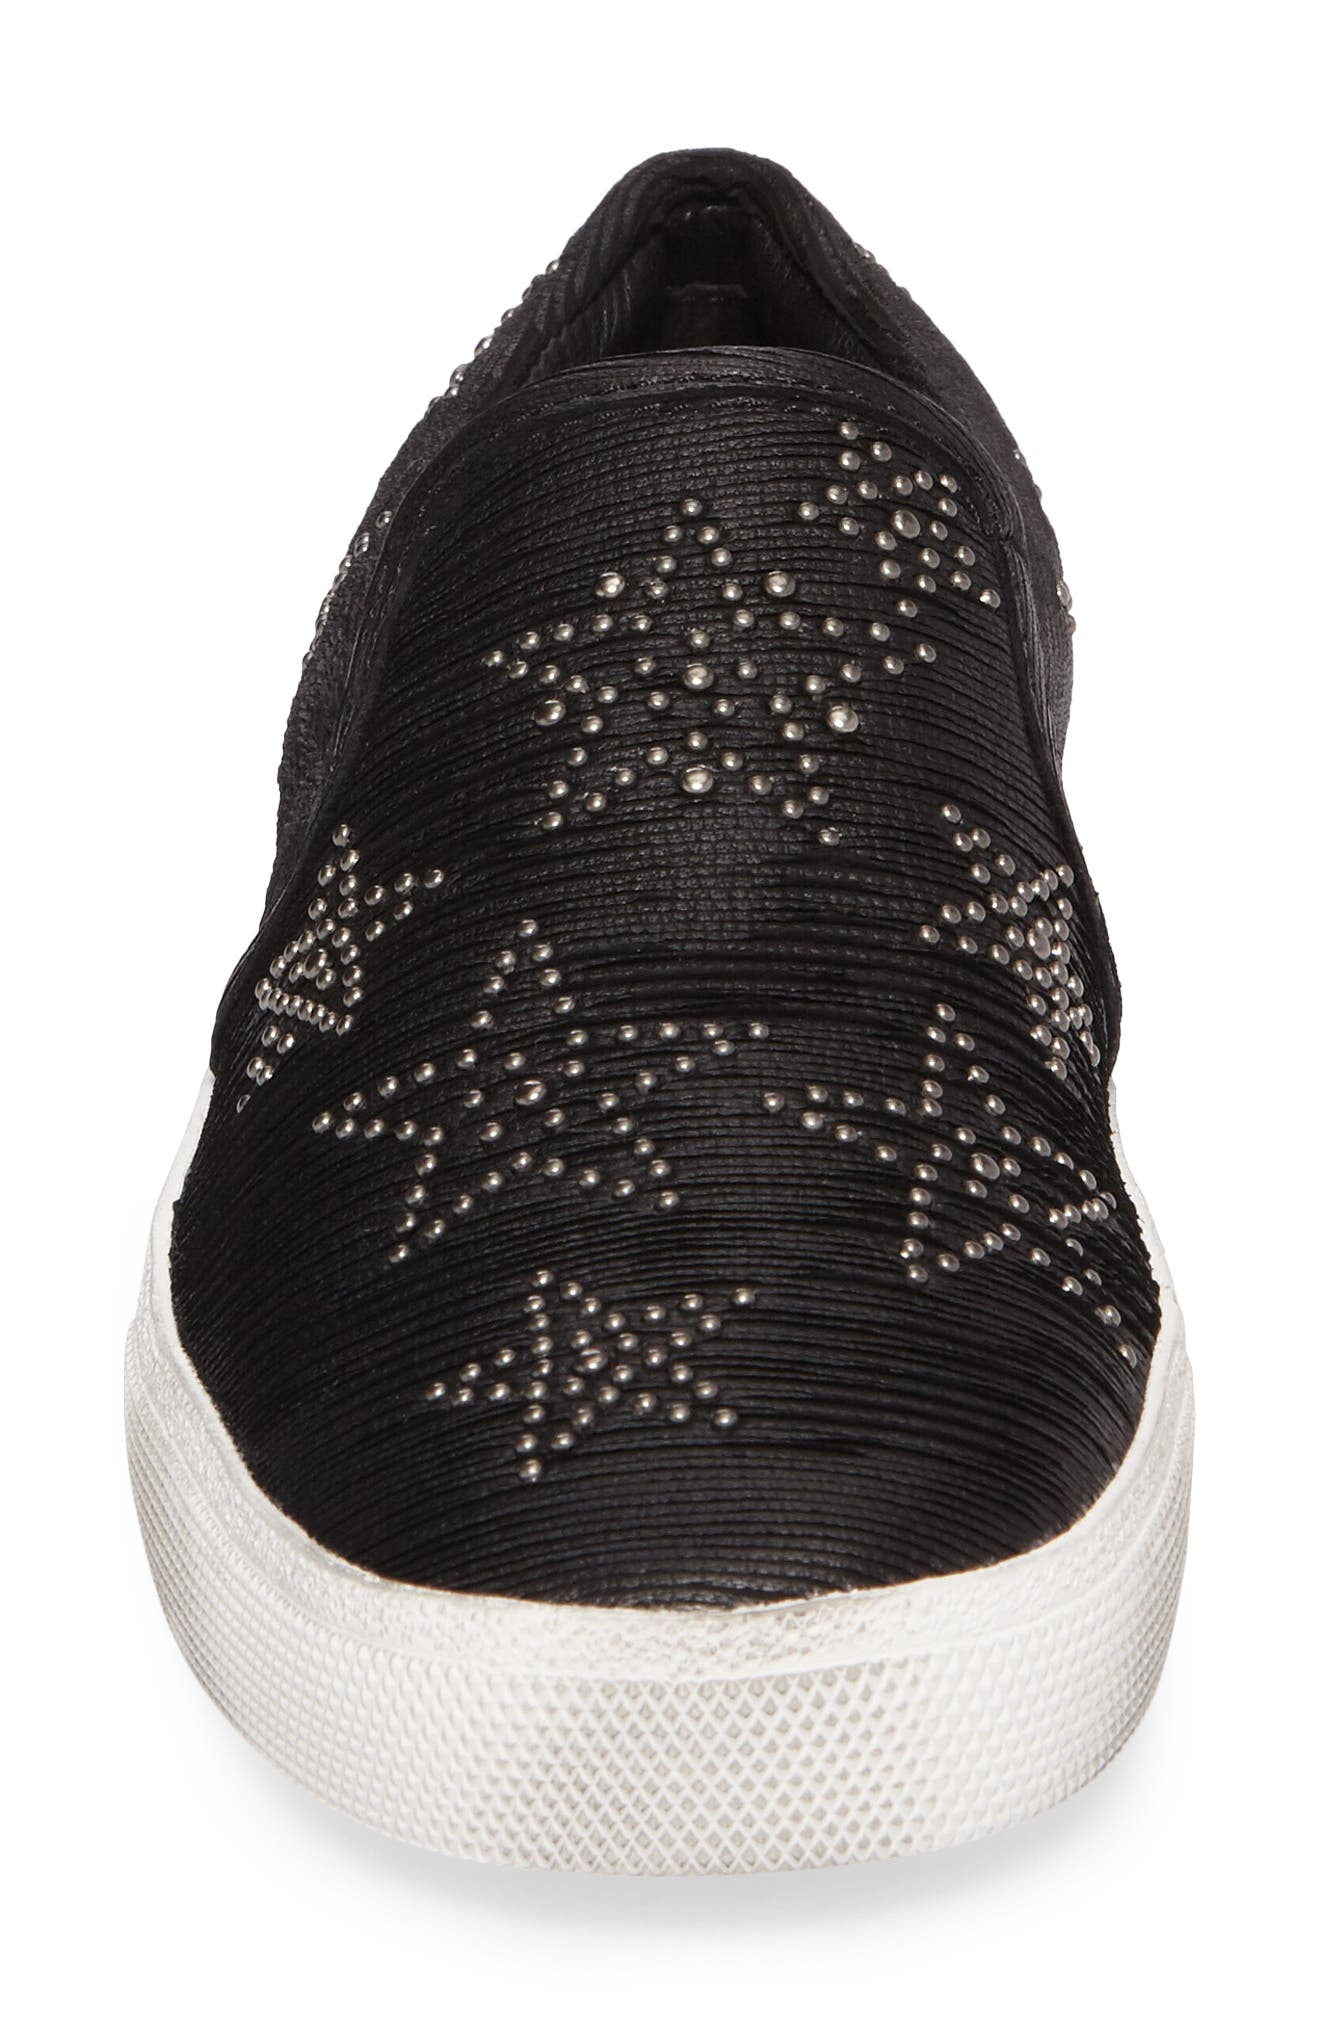 Star Slip-On Sneaker,                             Alternate thumbnail 4, color,                             001